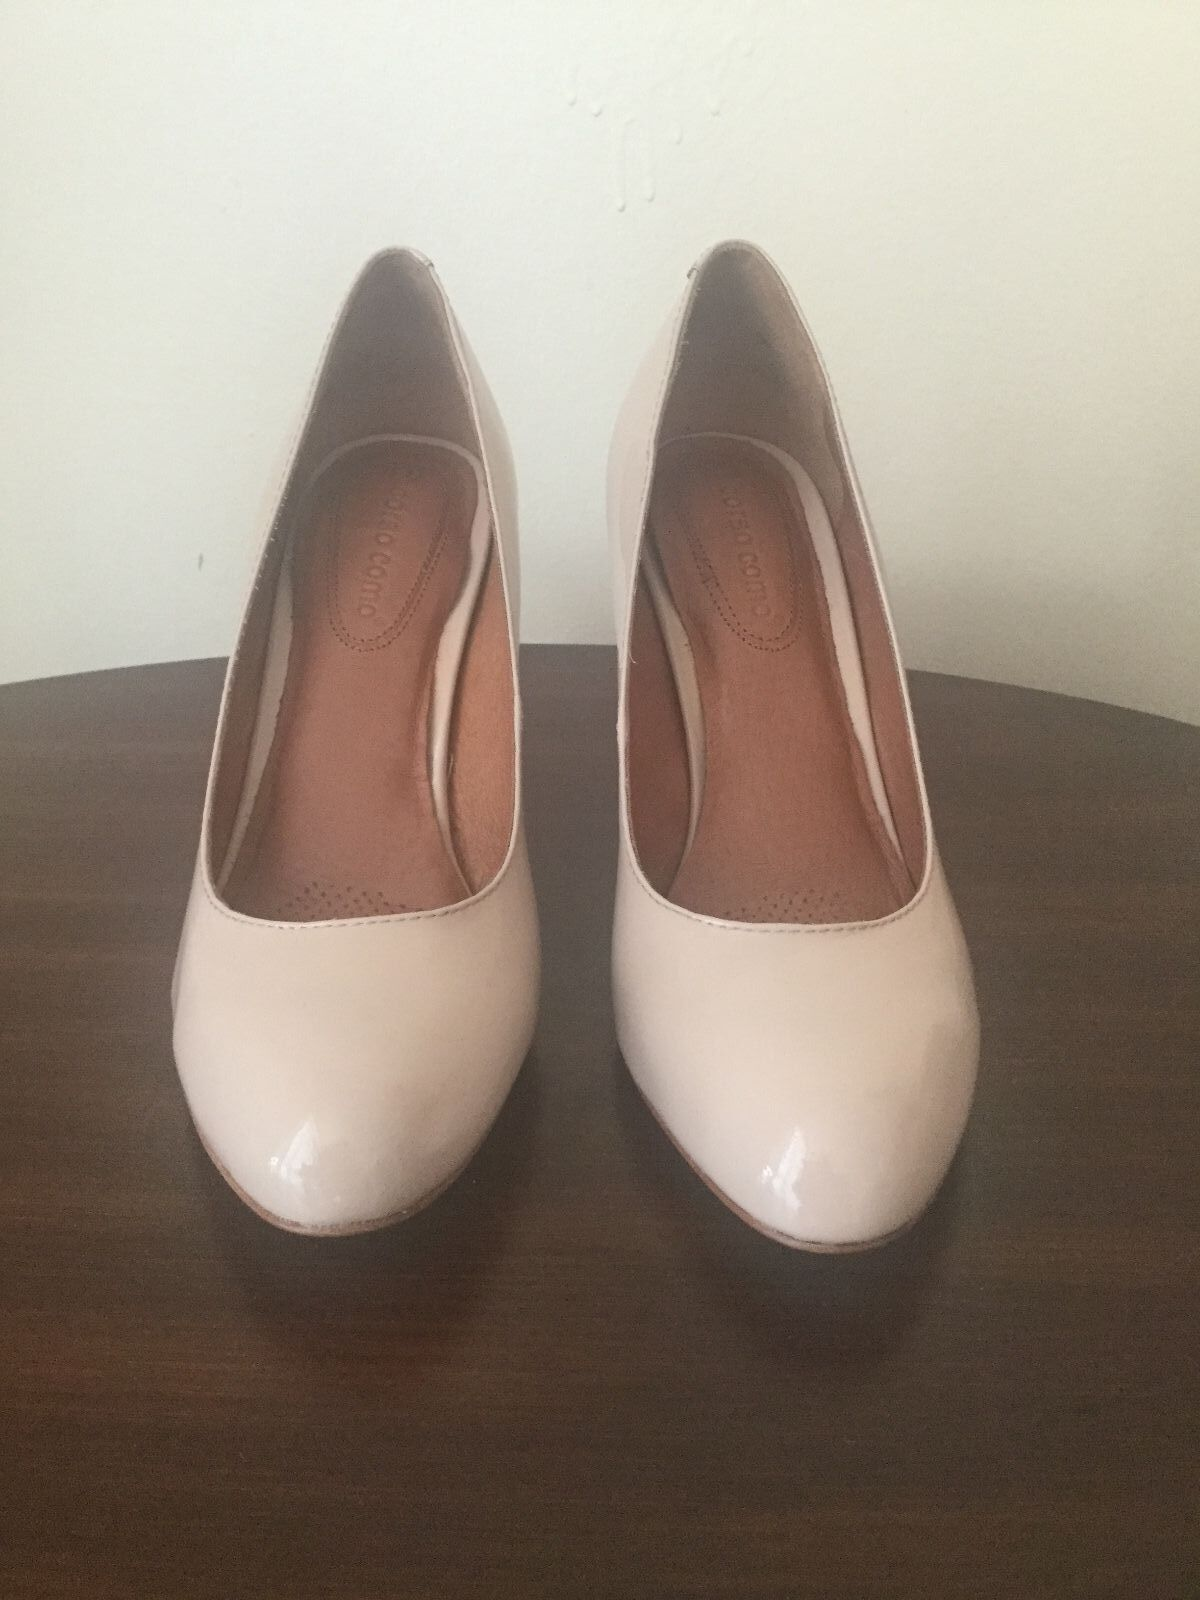 New CORSO COMO Del Pump Shell Patent Leather Shoes 7